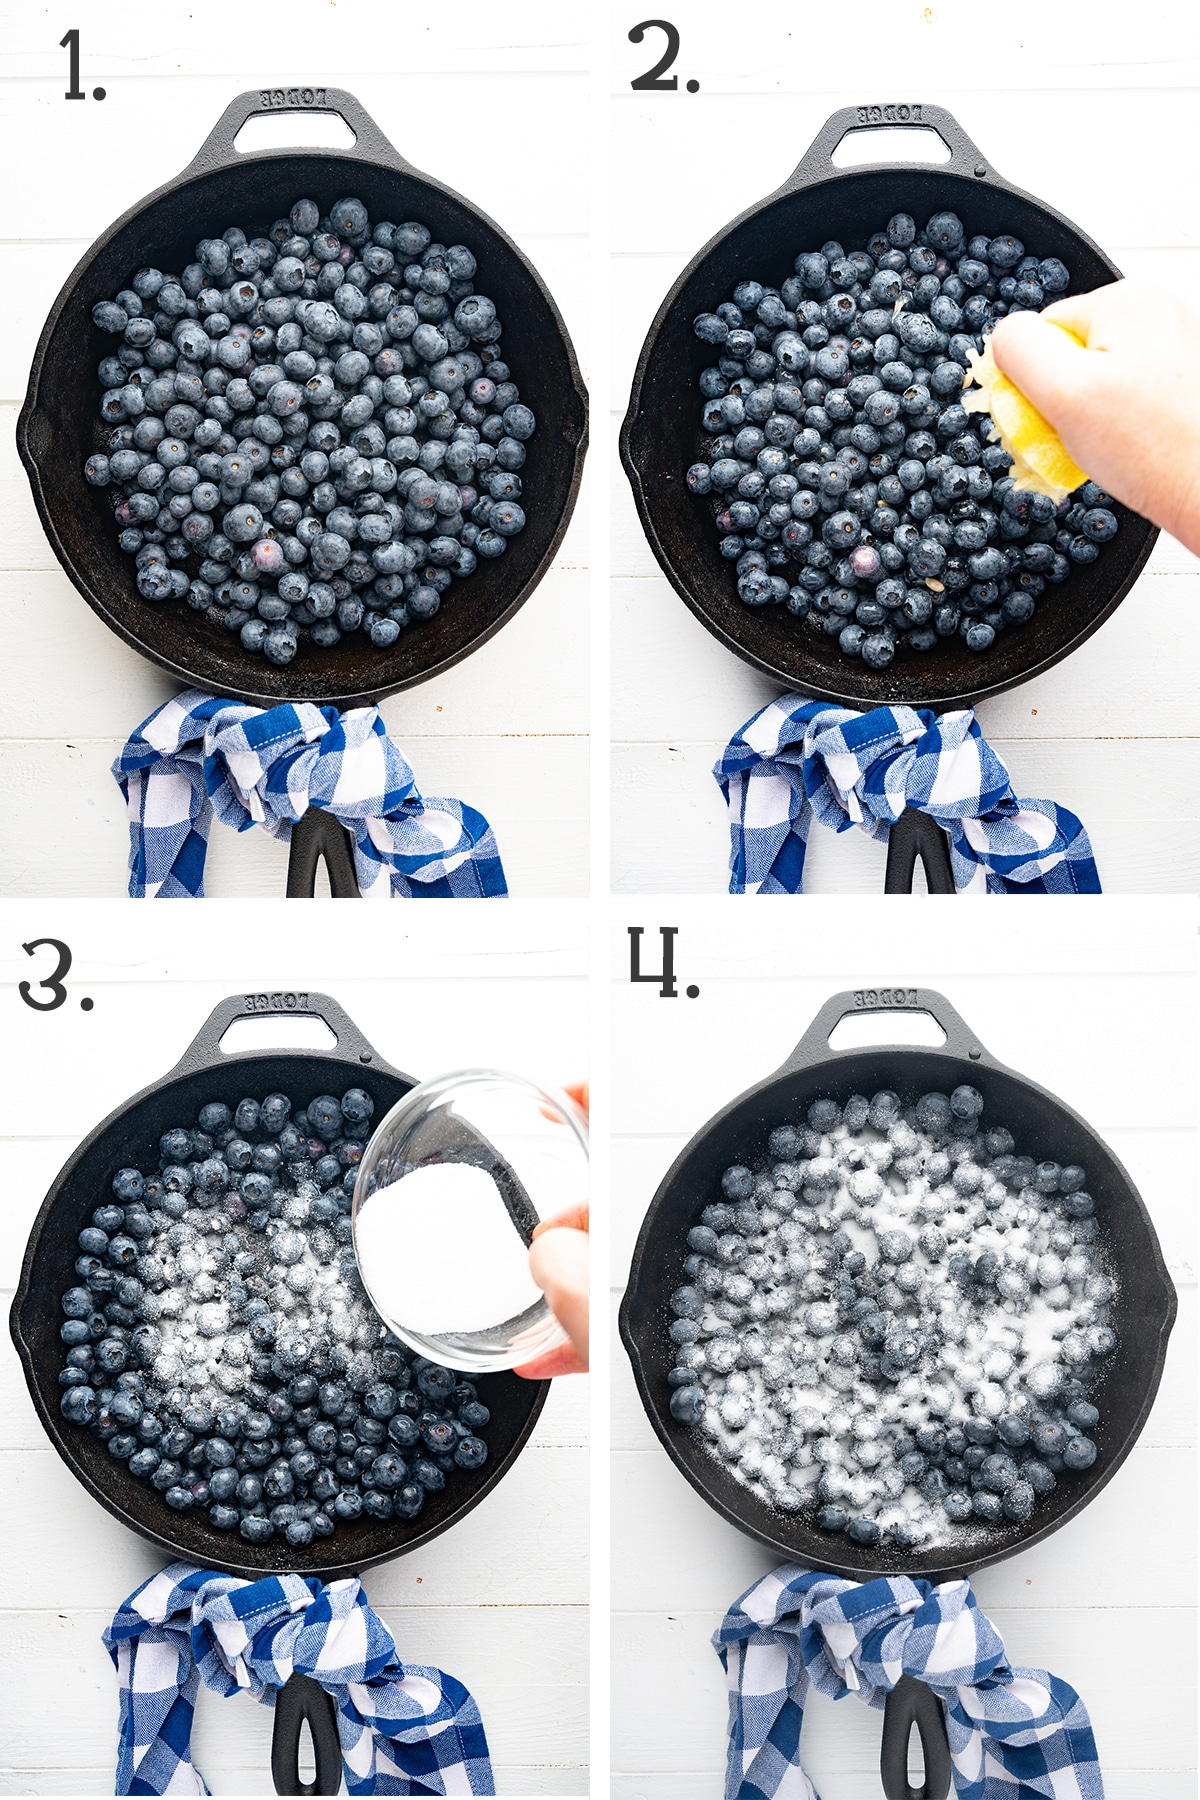 four panel photo showing how to prep the blueberries for the cobbler recipe.  The blueberries are in a black cast iron pan sitting on a bright white wooden background.